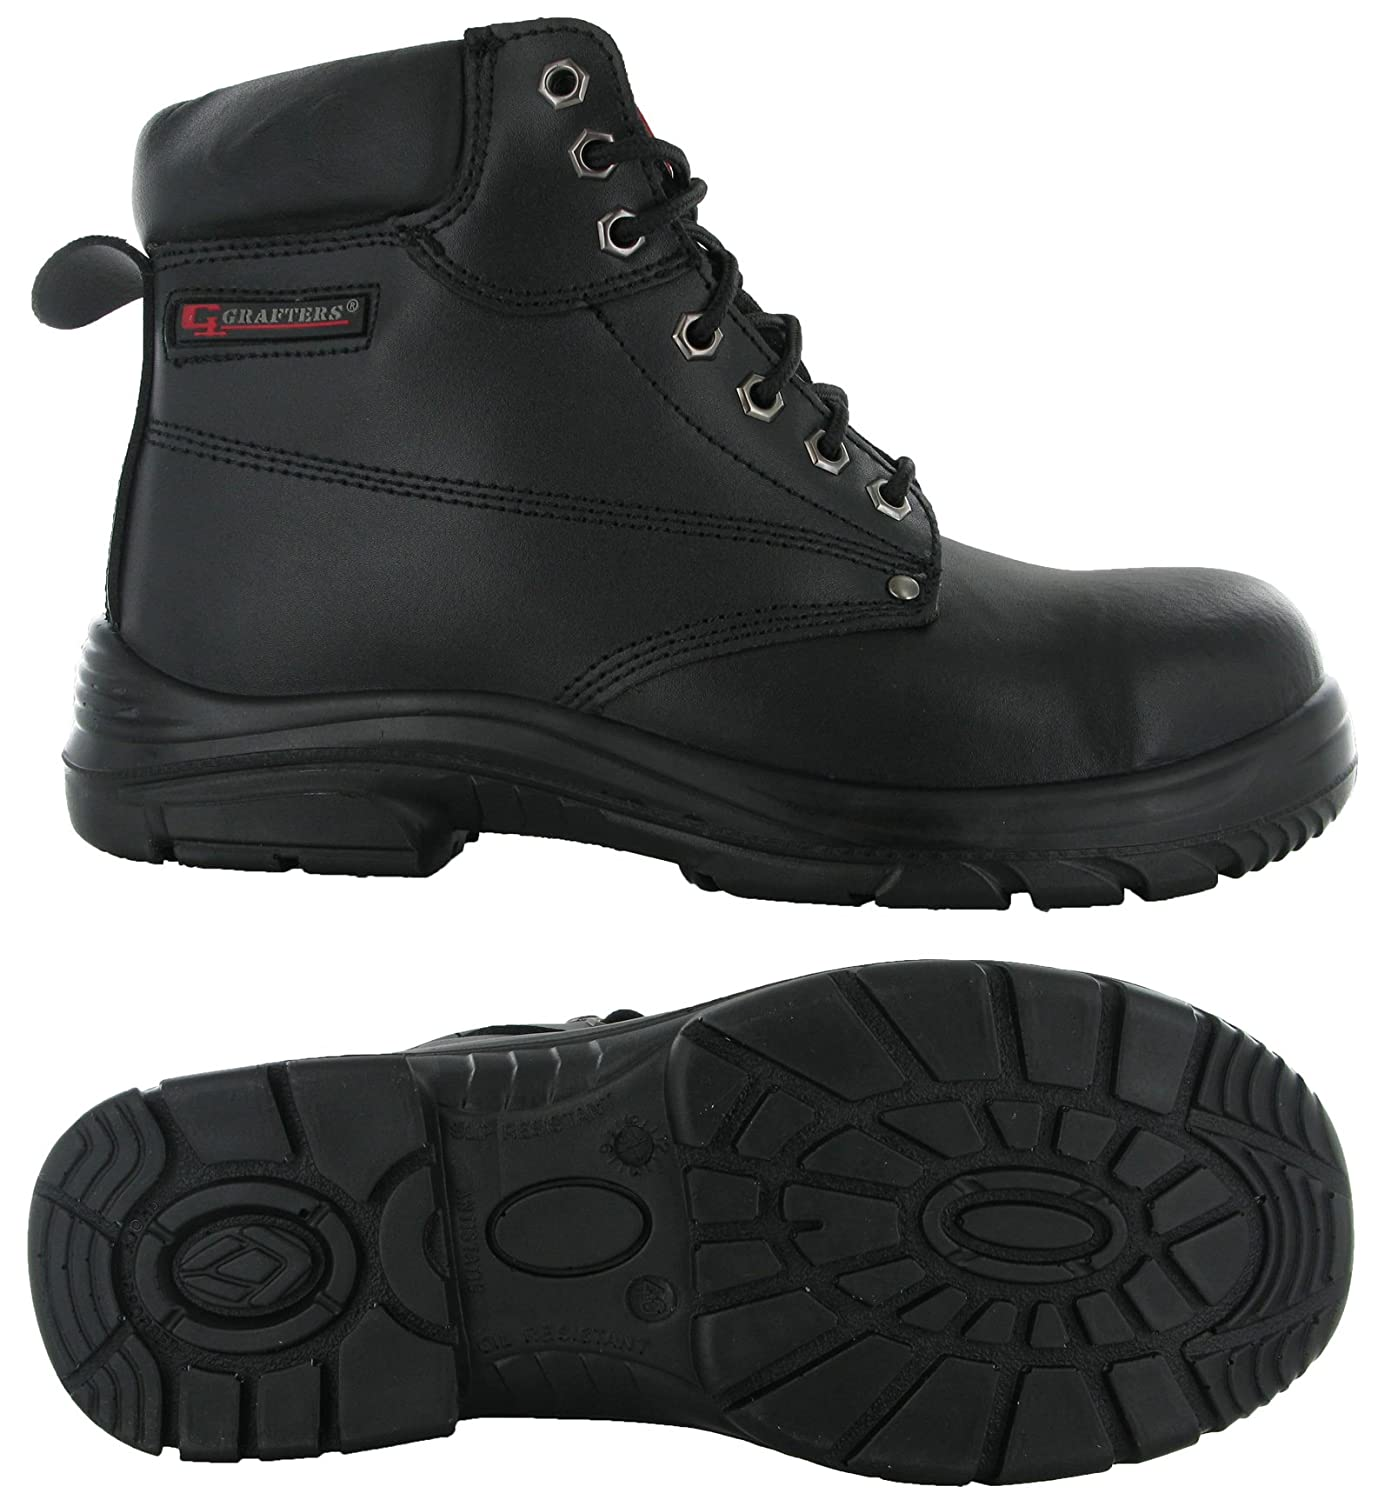 abf1029d7f80 Grafters Wide EEEE Fitting 7 Eye Leather Safety Steel Toe Cap Mens Boots  UK6-14  Amazon.co.uk  Shoes   Bags